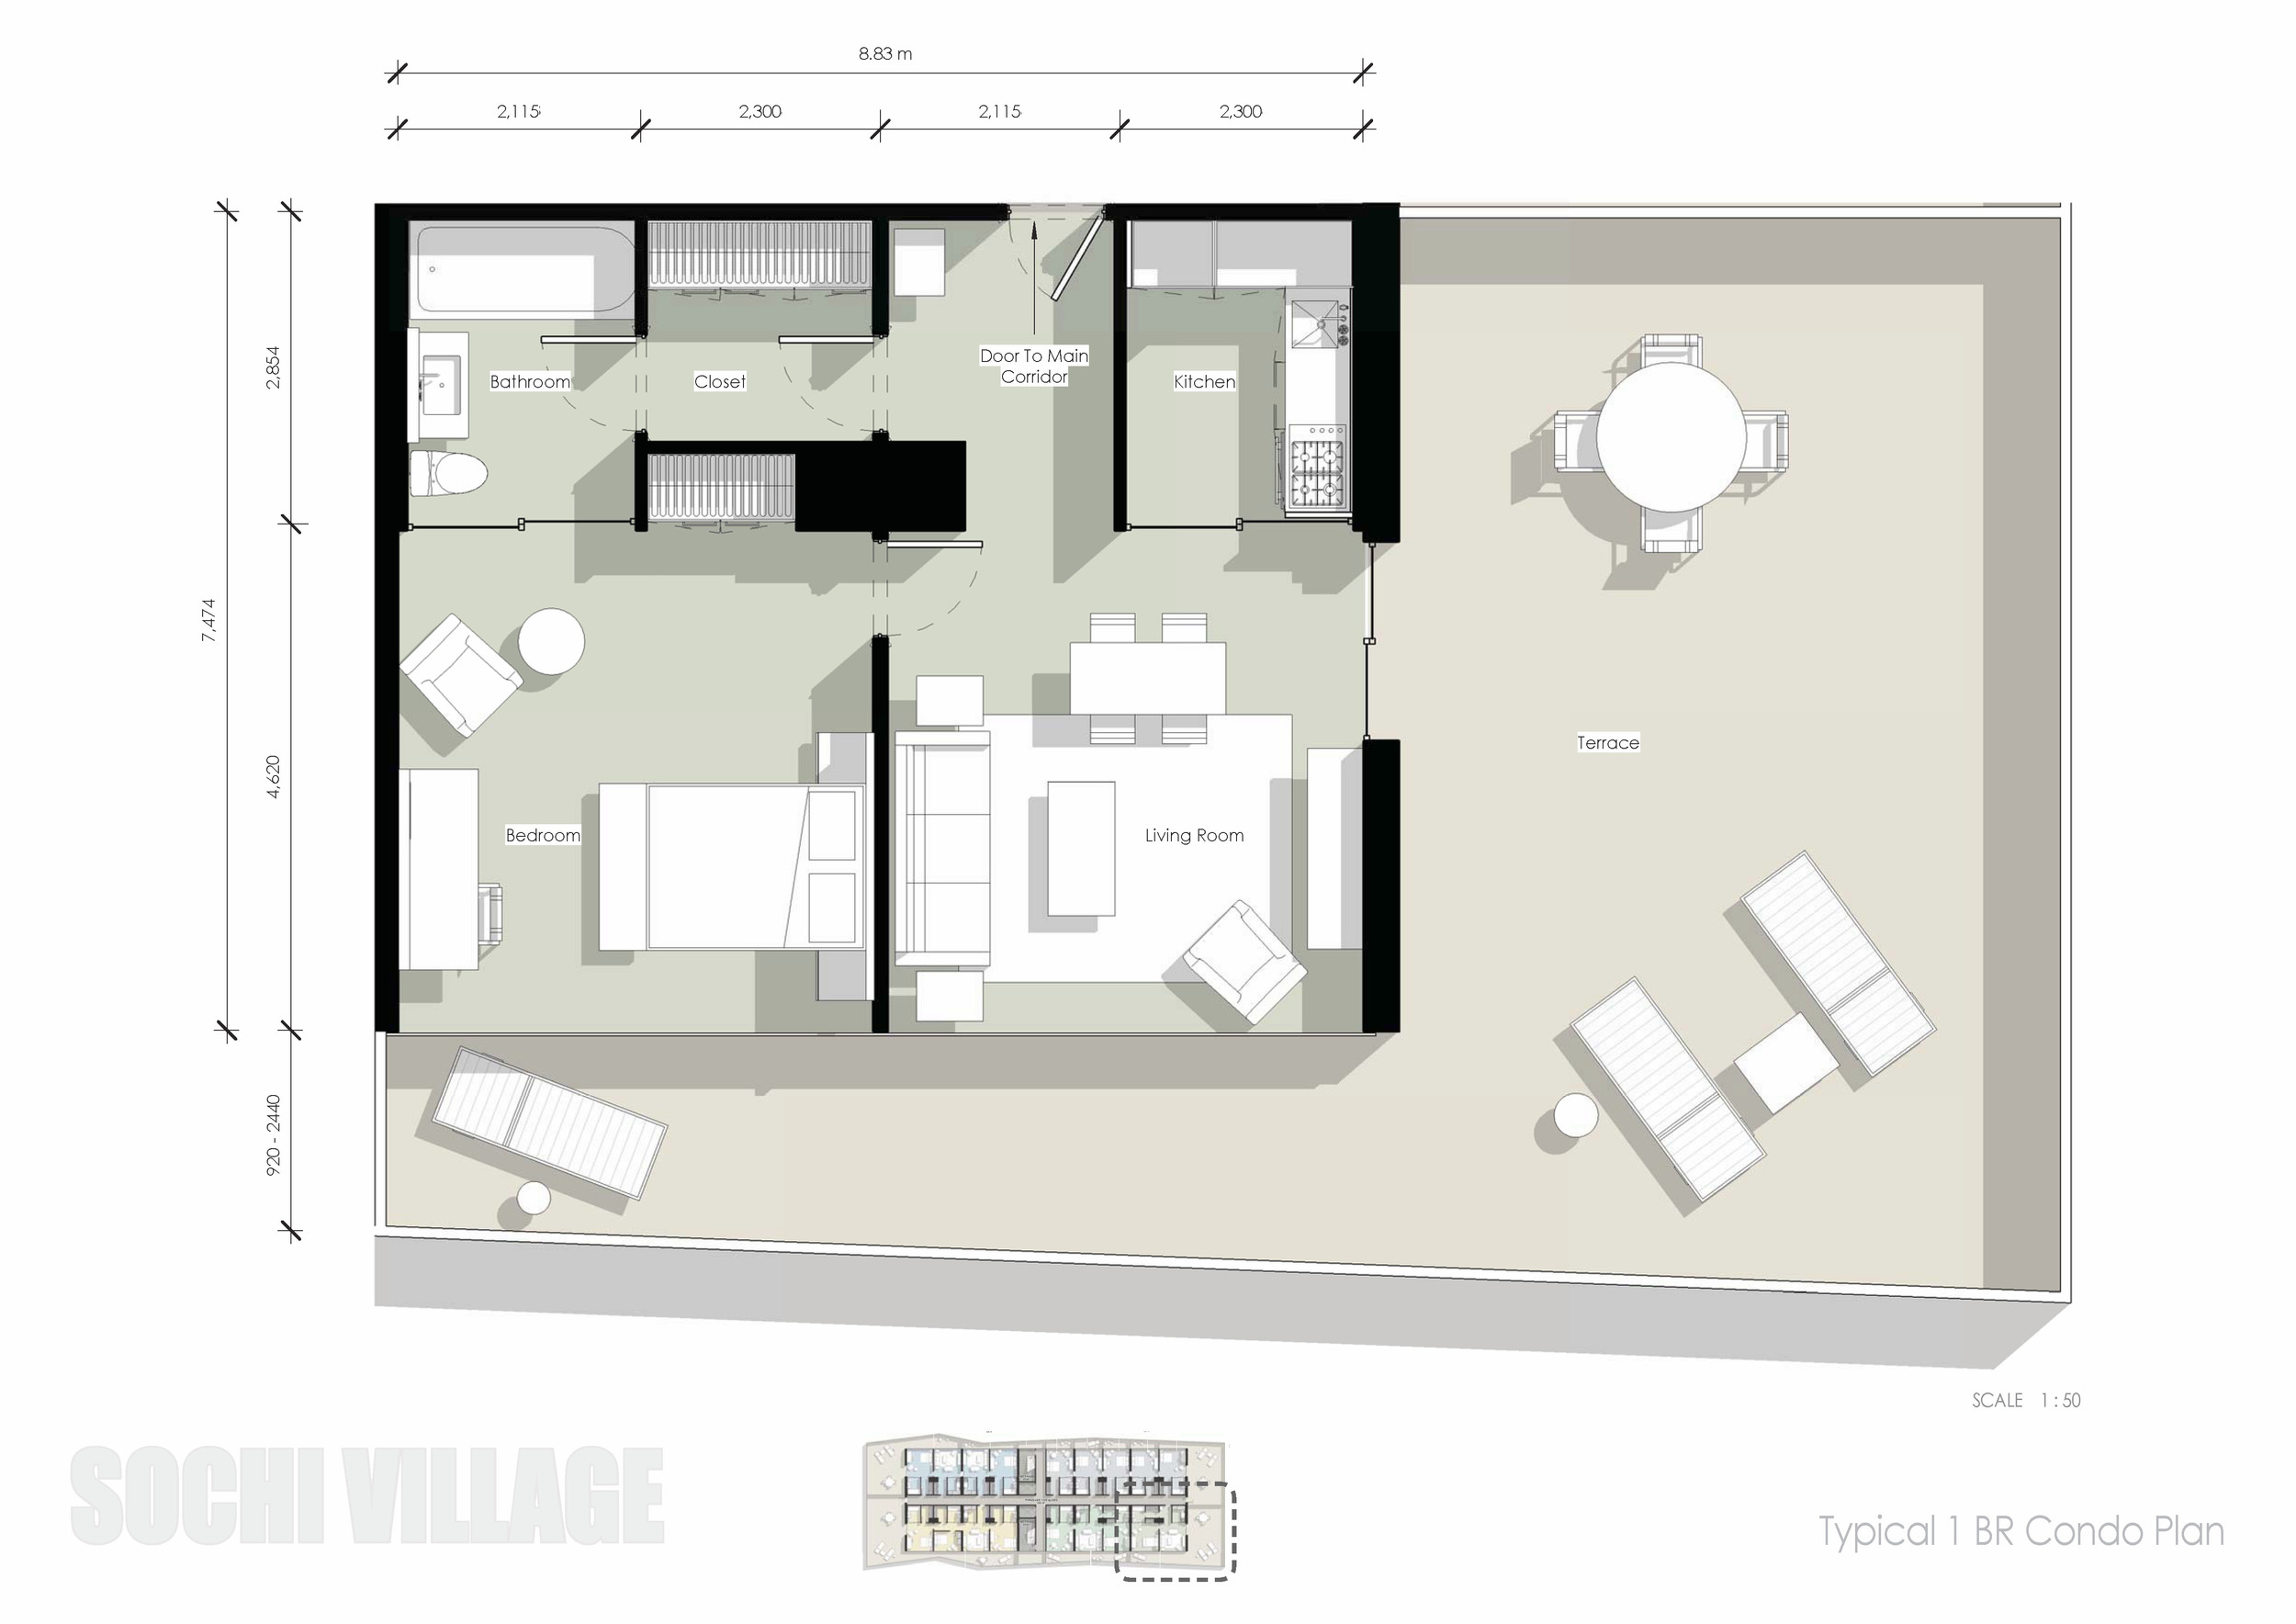 Sochi Olympic Village Typical 1 Bedroom Condo Plan